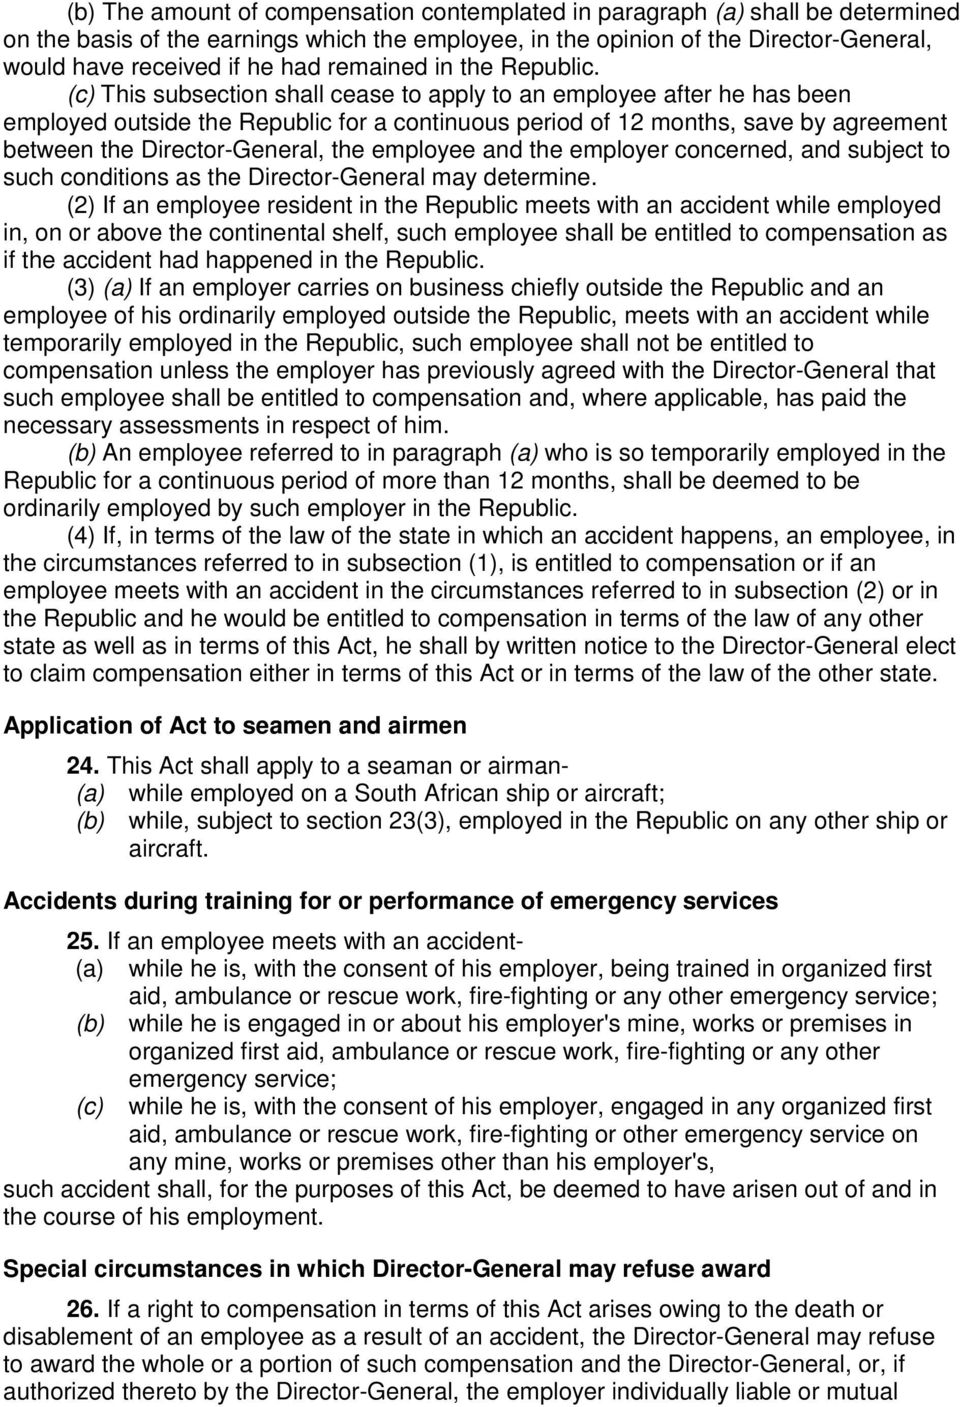 (c) This subsection shall cease to apply to an employee after he has been employed outside the Republic for a continuous period of 12 months, save by agreement between the Director-General, the